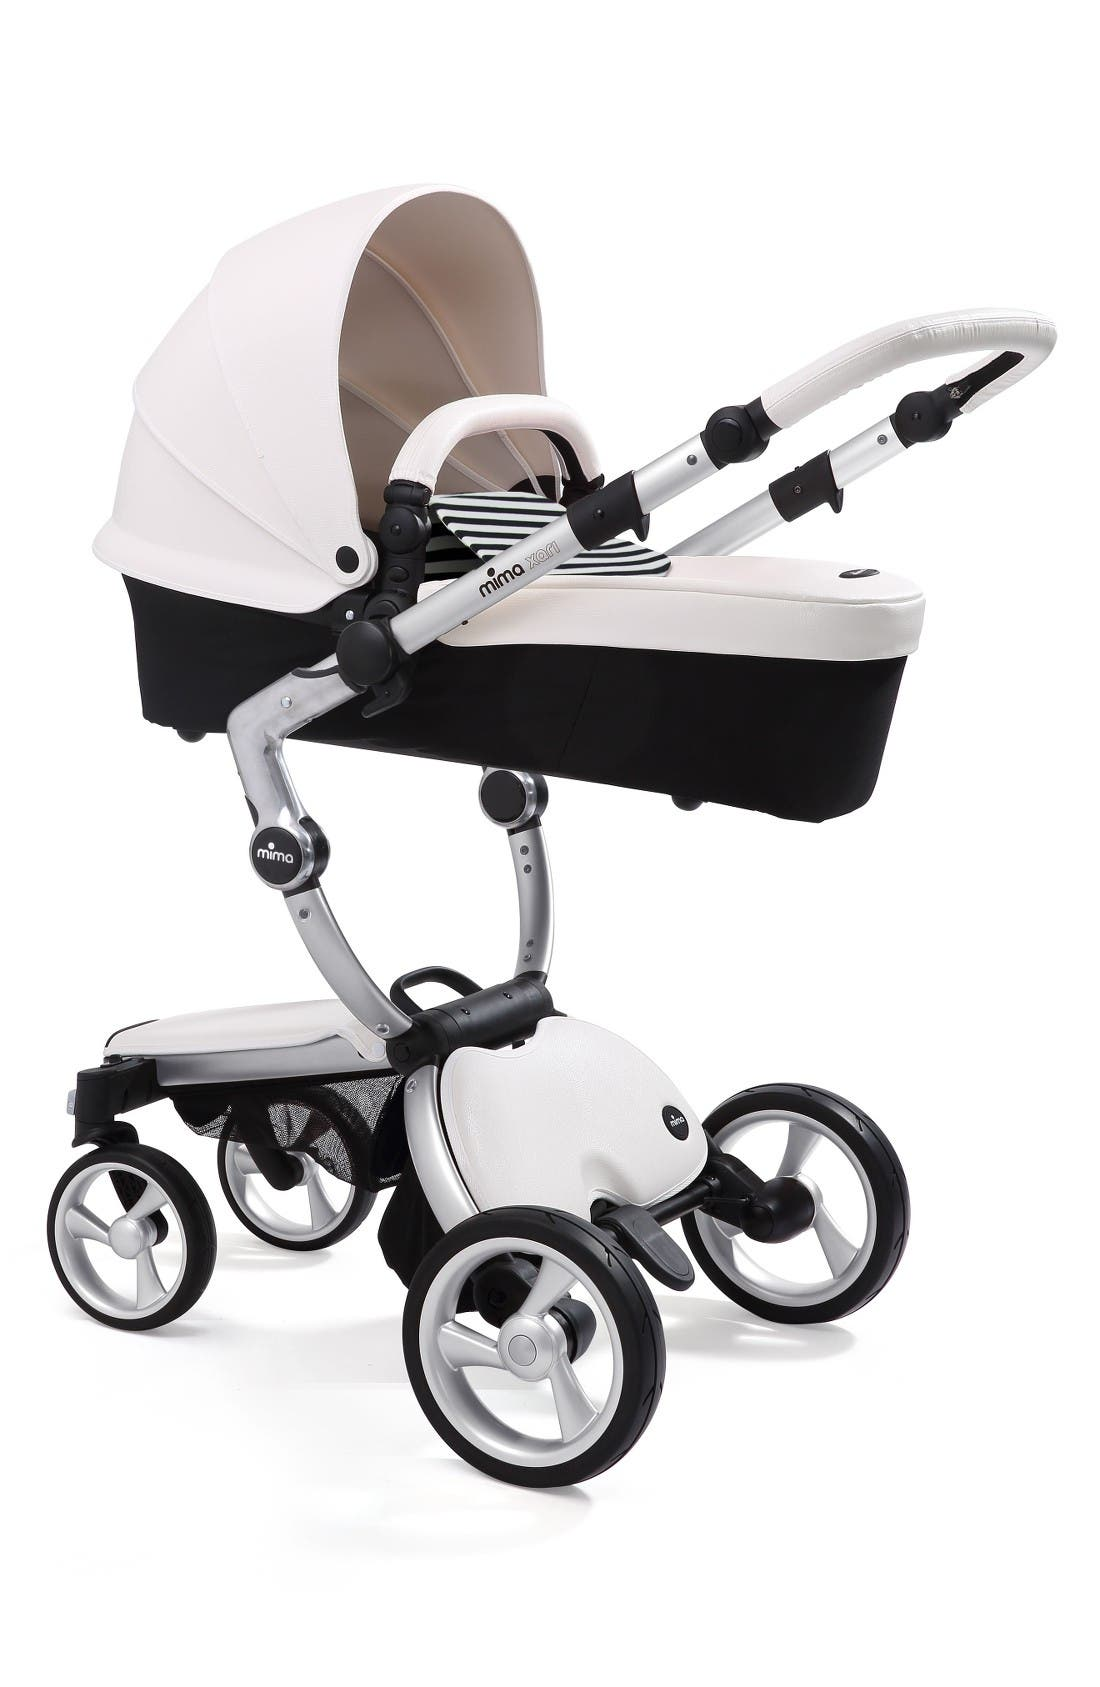 Xari Aluminum Chassis Stroller with Reversible Reclining Seat & Carrycot,                             Alternate thumbnail 2, color,                             Black / Black And White